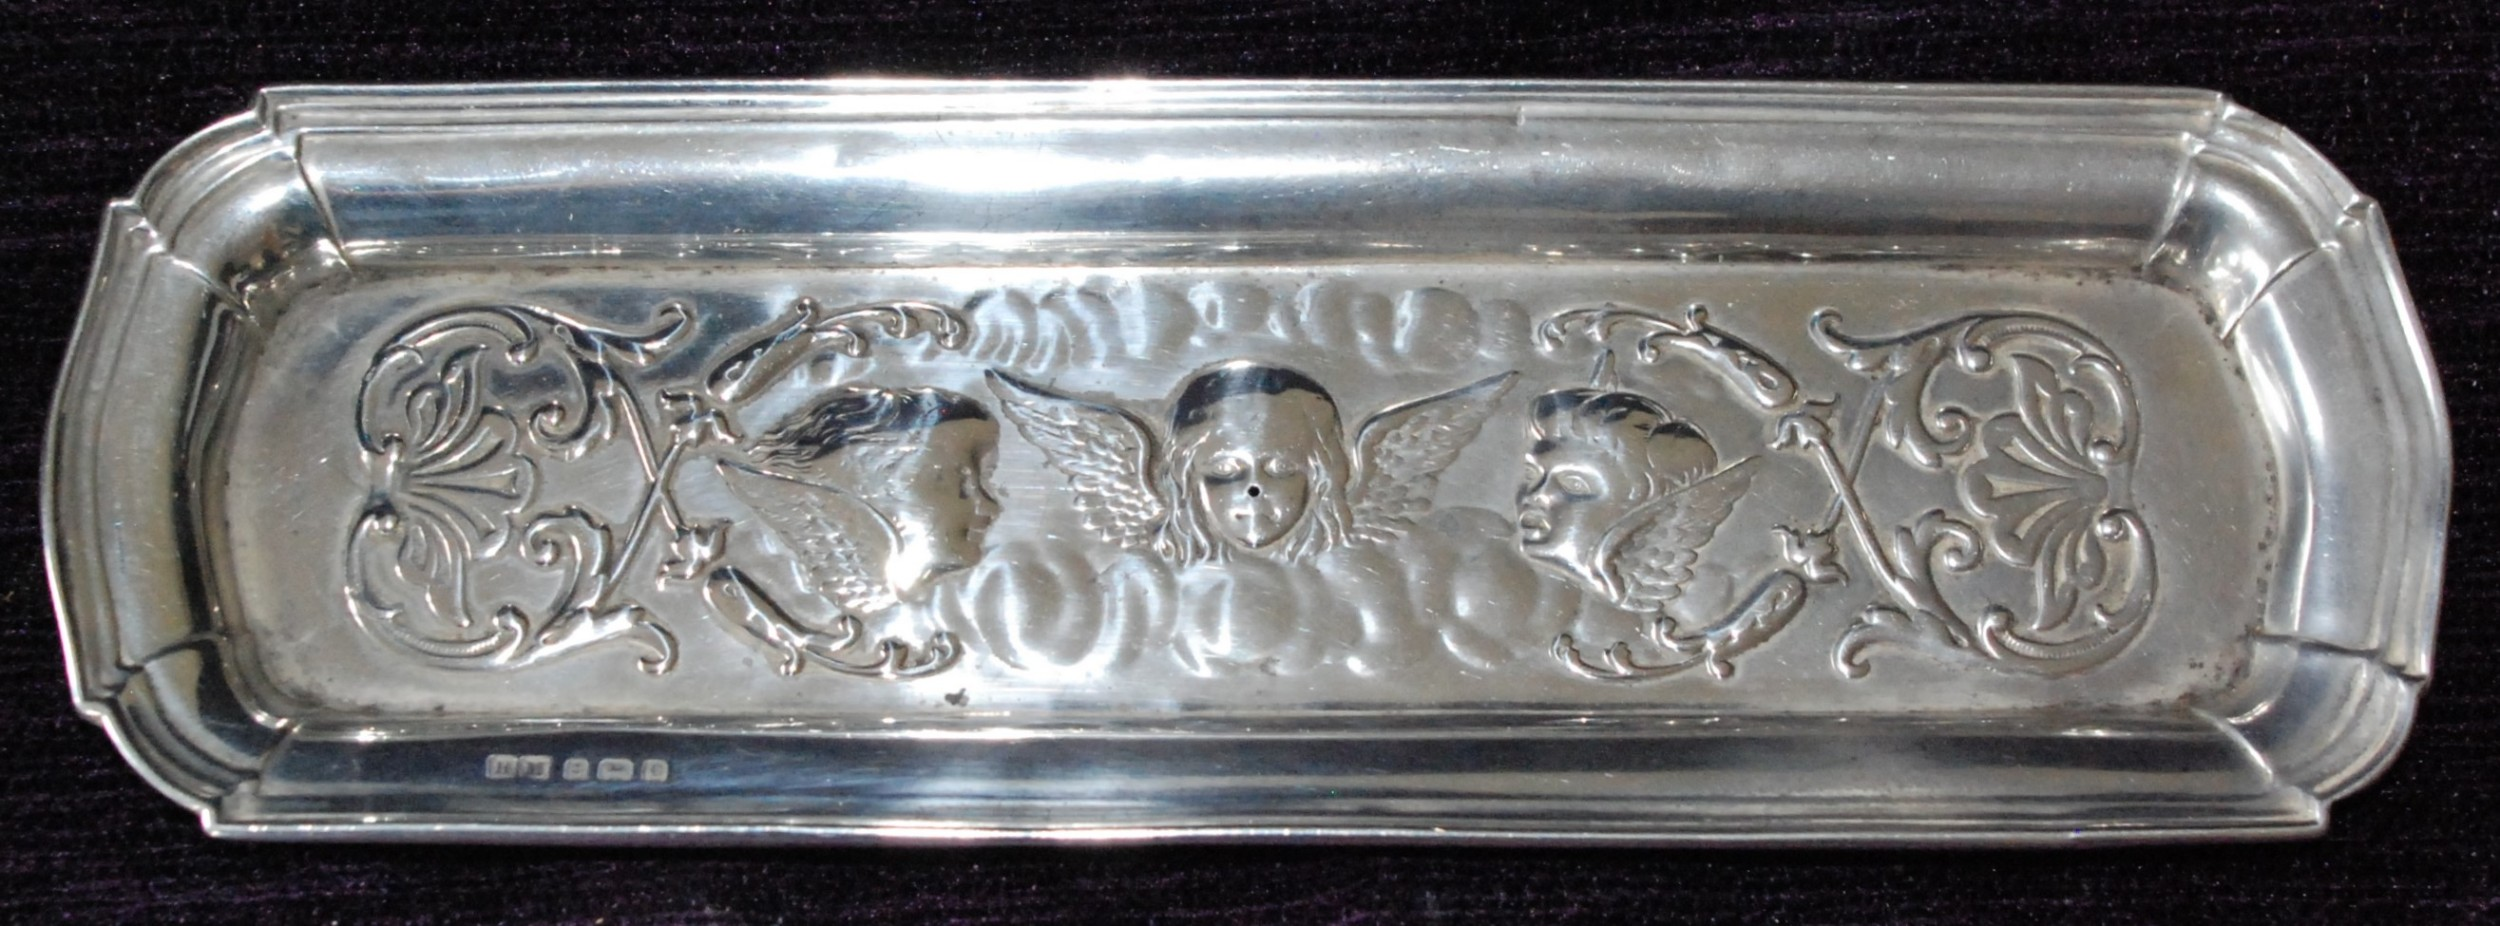 edwardian silver pen tray